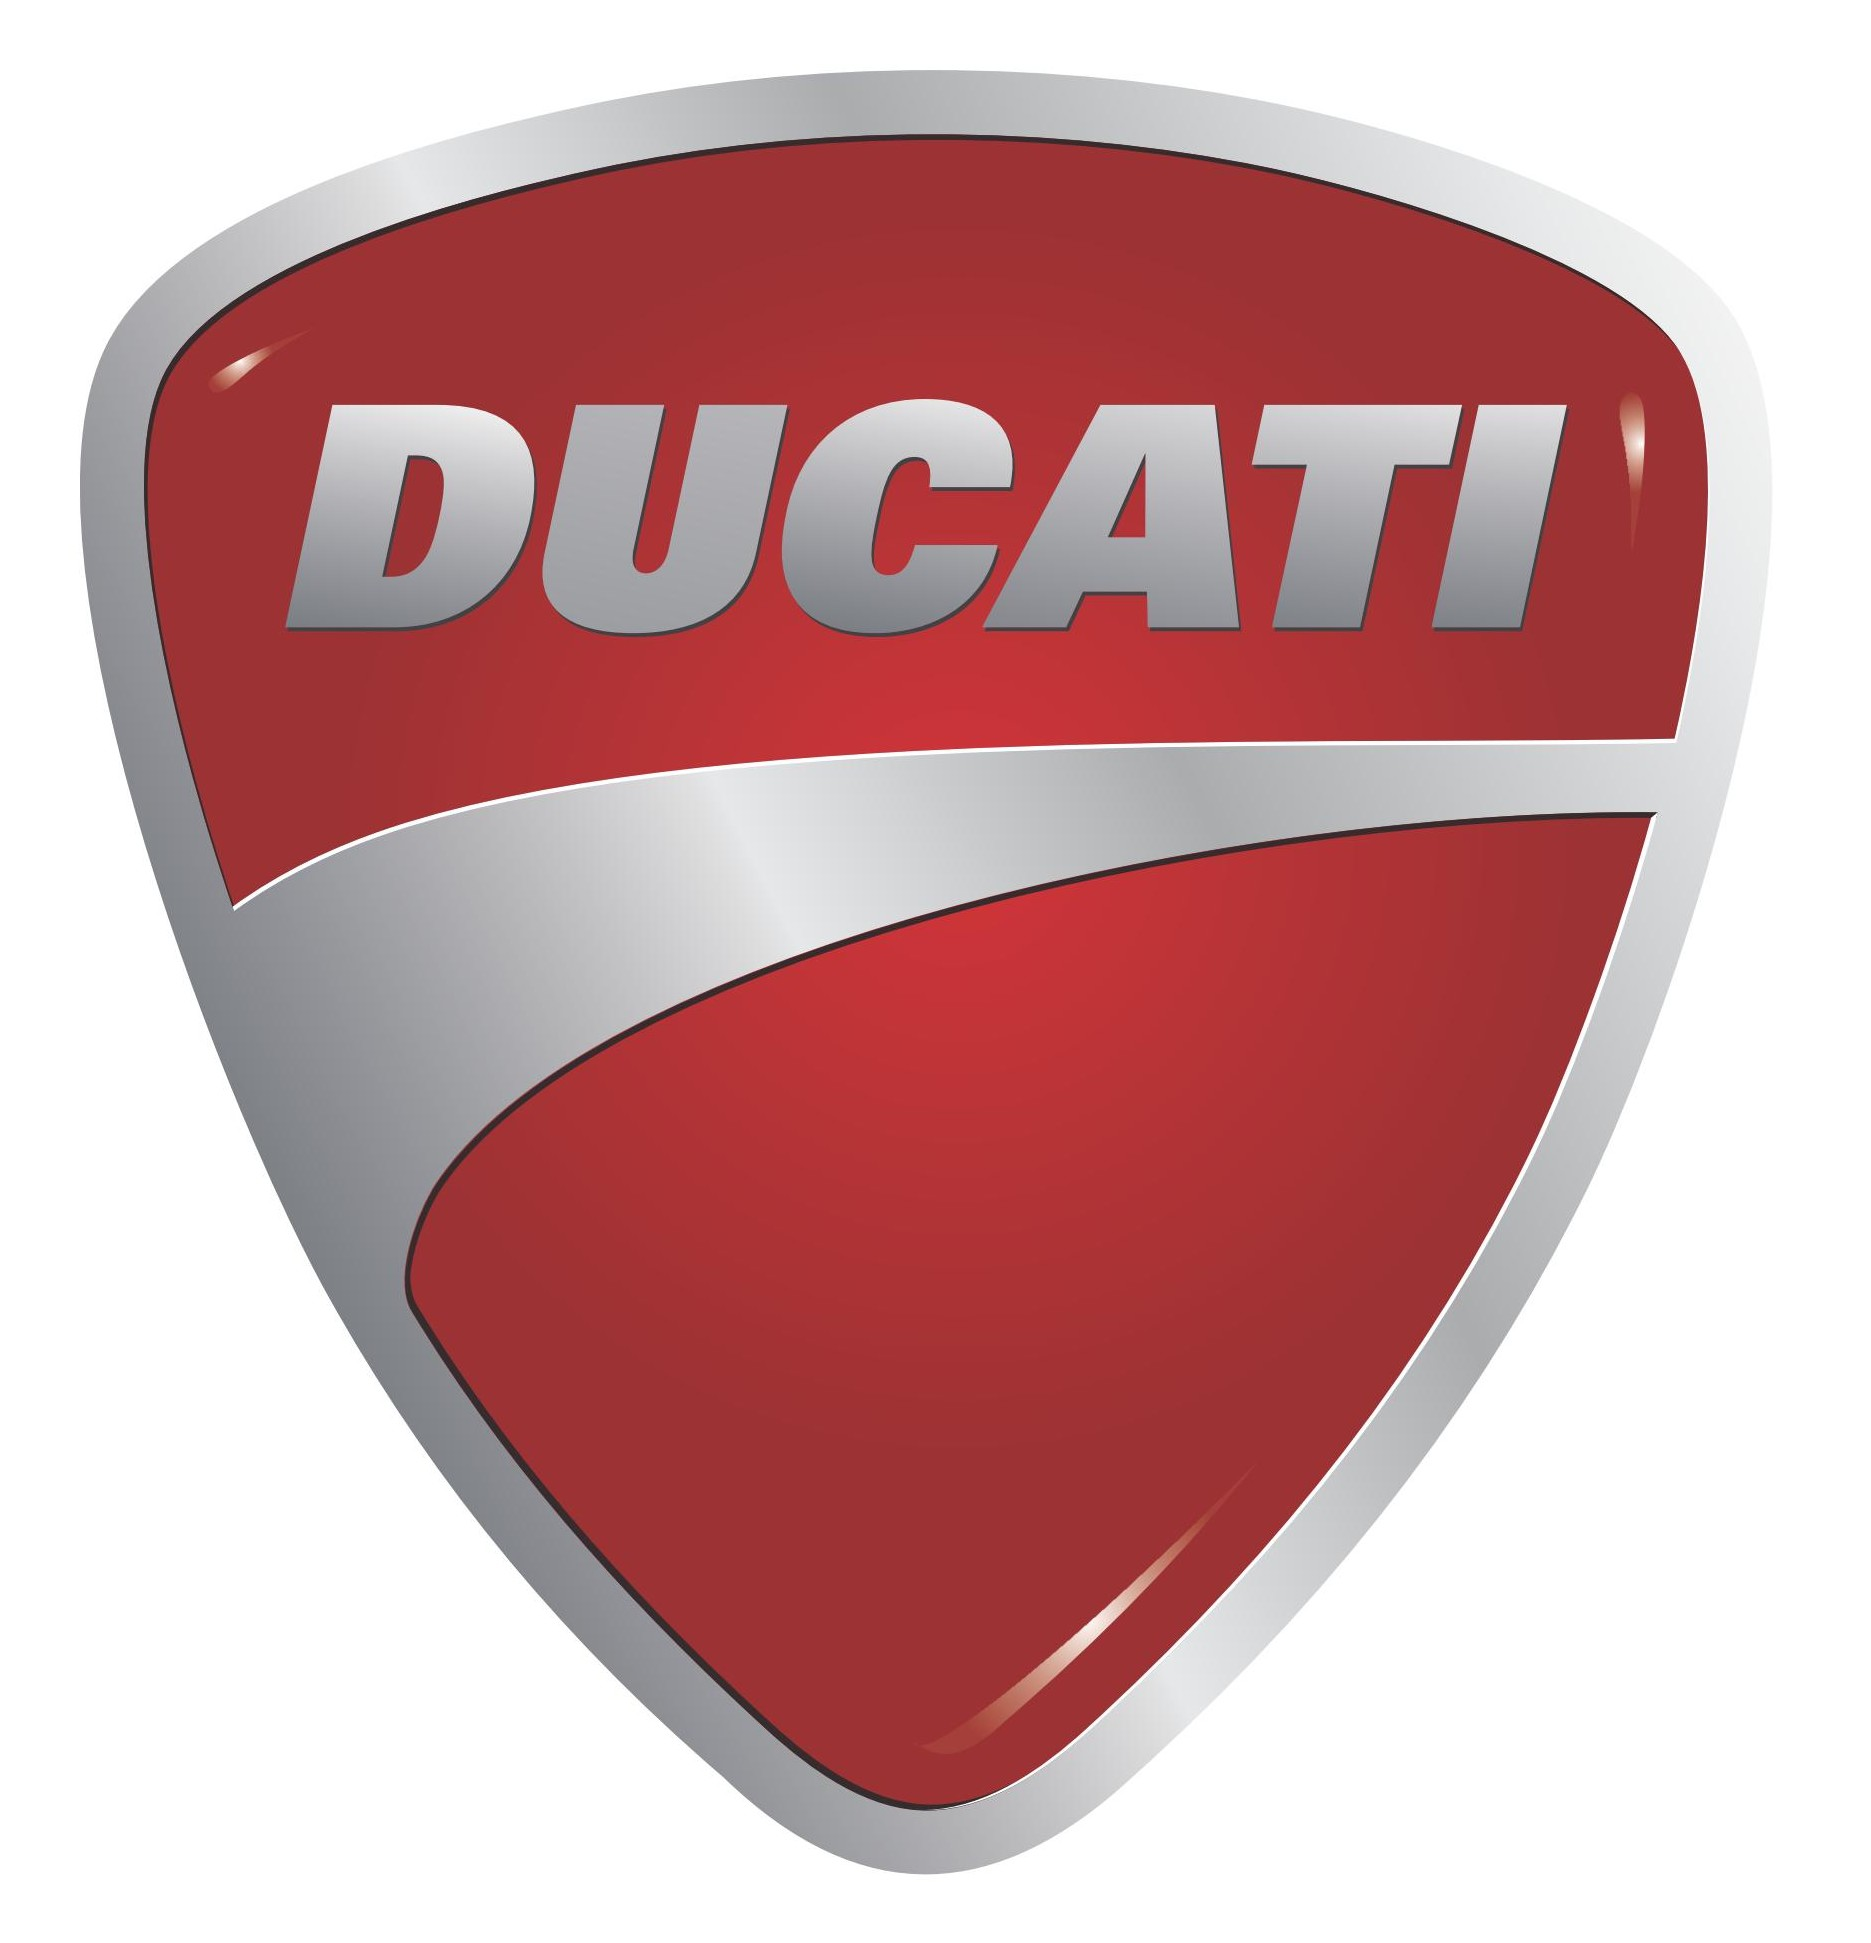 Ducati Motor Holding S.p.A. is a motorcycle manufacturer in Bologna, Italy - Ducati Logo Vector PNG